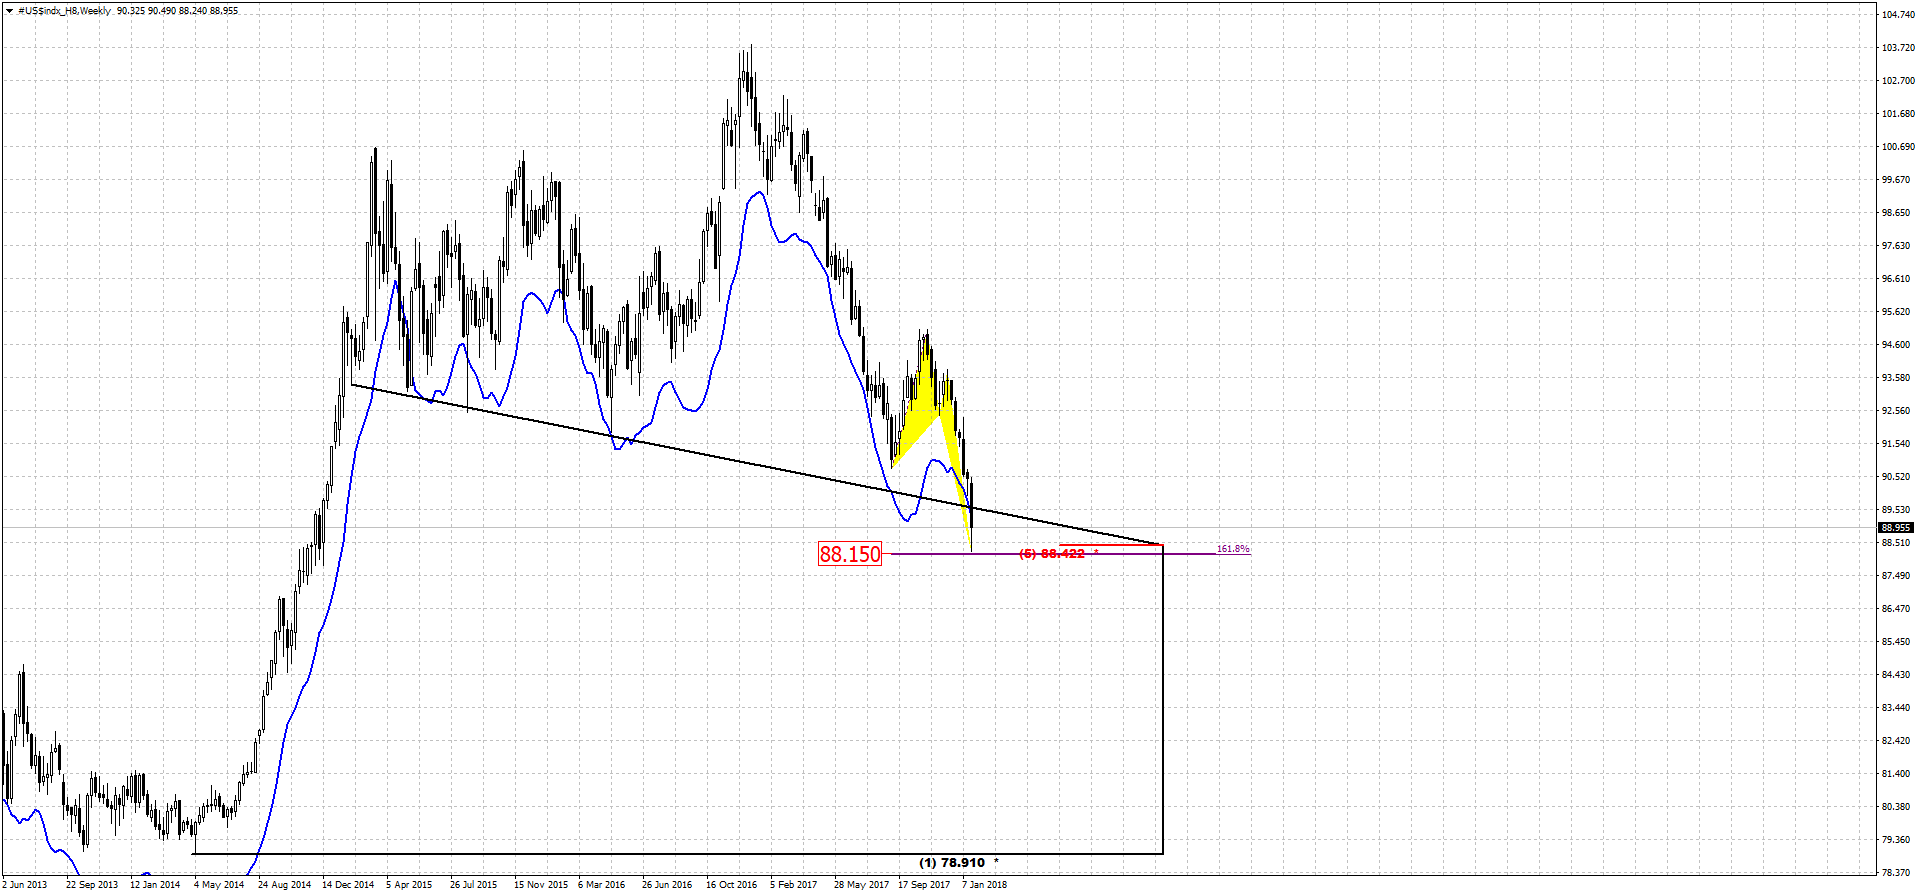 dxy_d_26_01_18.